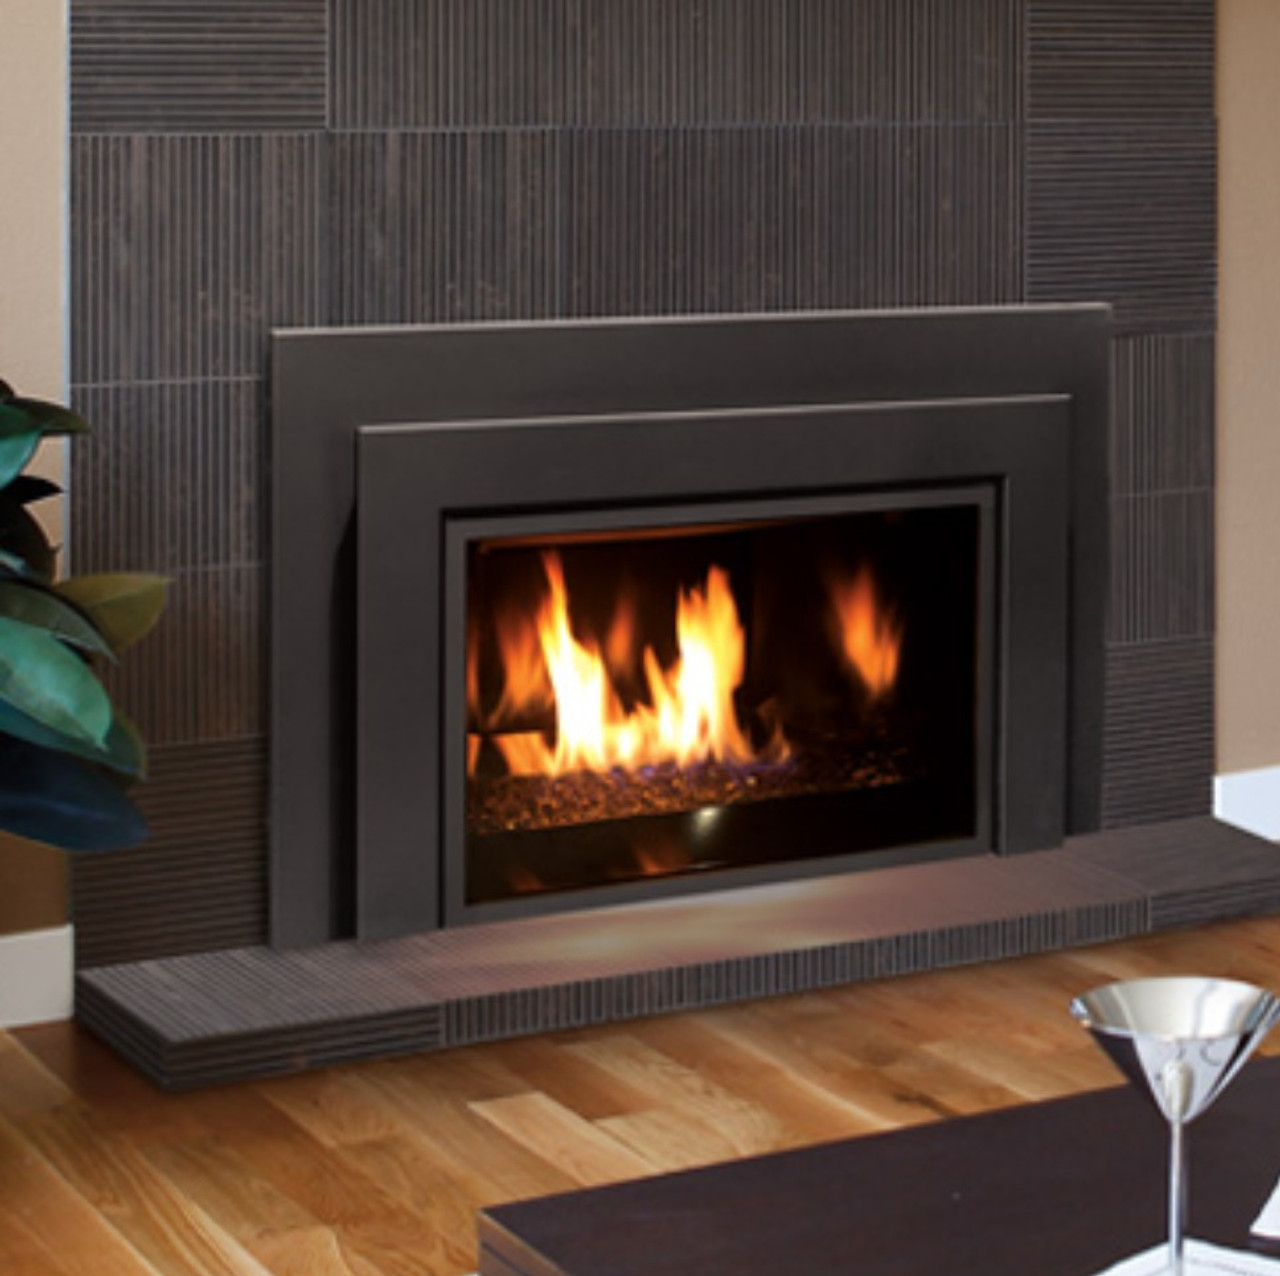 Enviro E33 Medium Gas Insert w/ contemporary surround